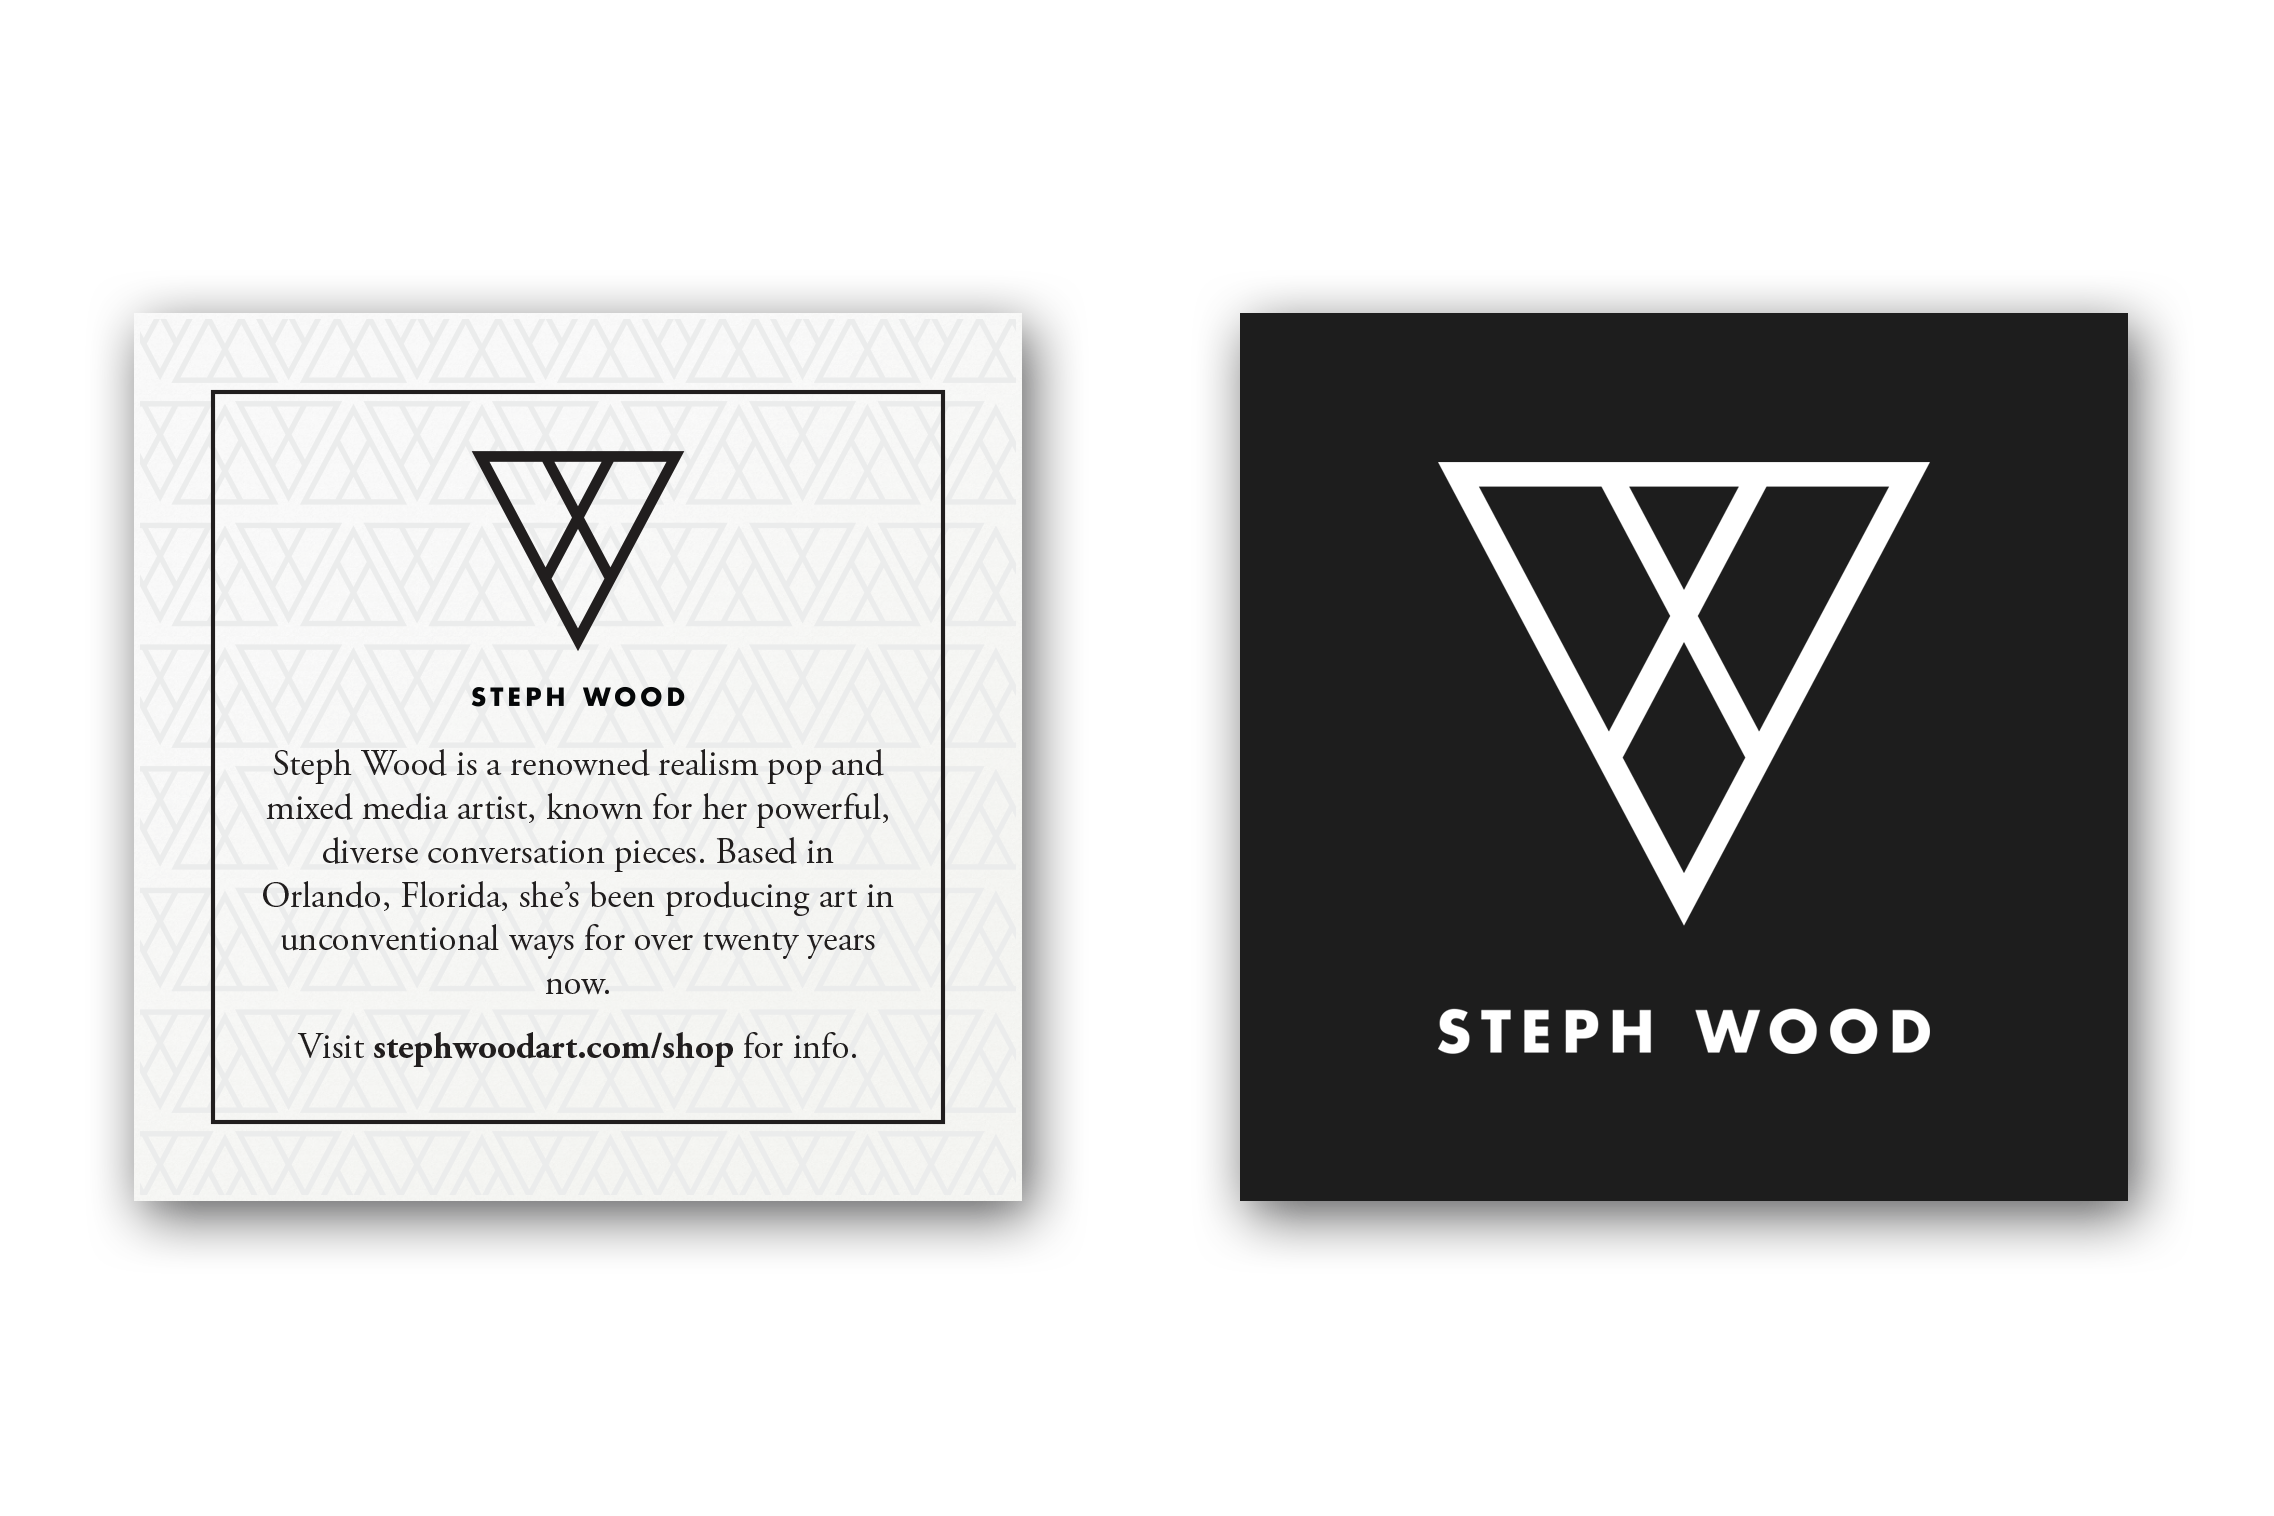 Steph Wood Authenticity Cards for art galleries